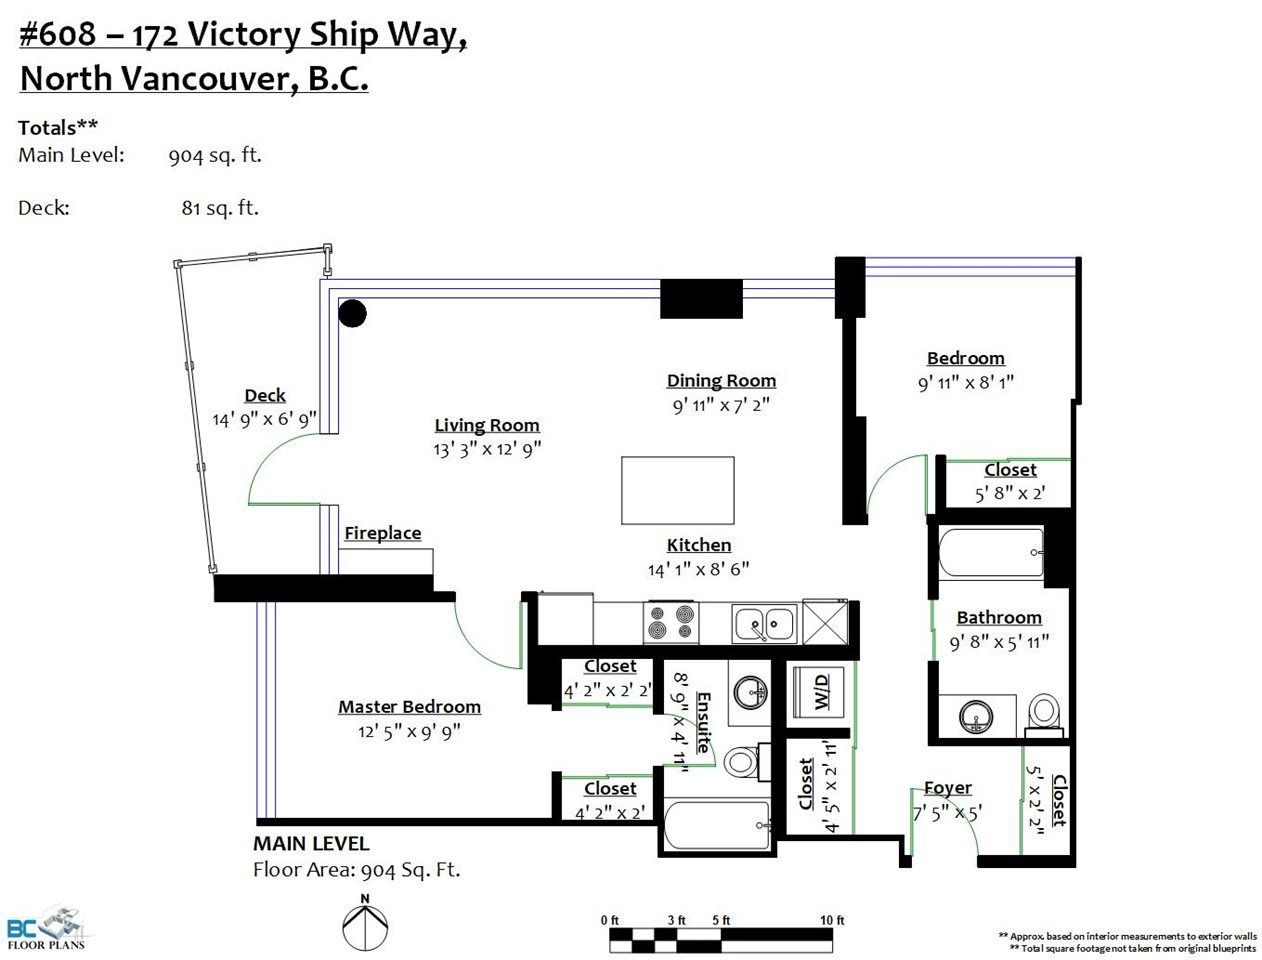 """Photo 19: Photos: 608 172 VICTORY SHIP Way in North Vancouver: Lower Lonsdale Condo for sale in """"Atrium at the Pier"""" : MLS®# R2454404"""